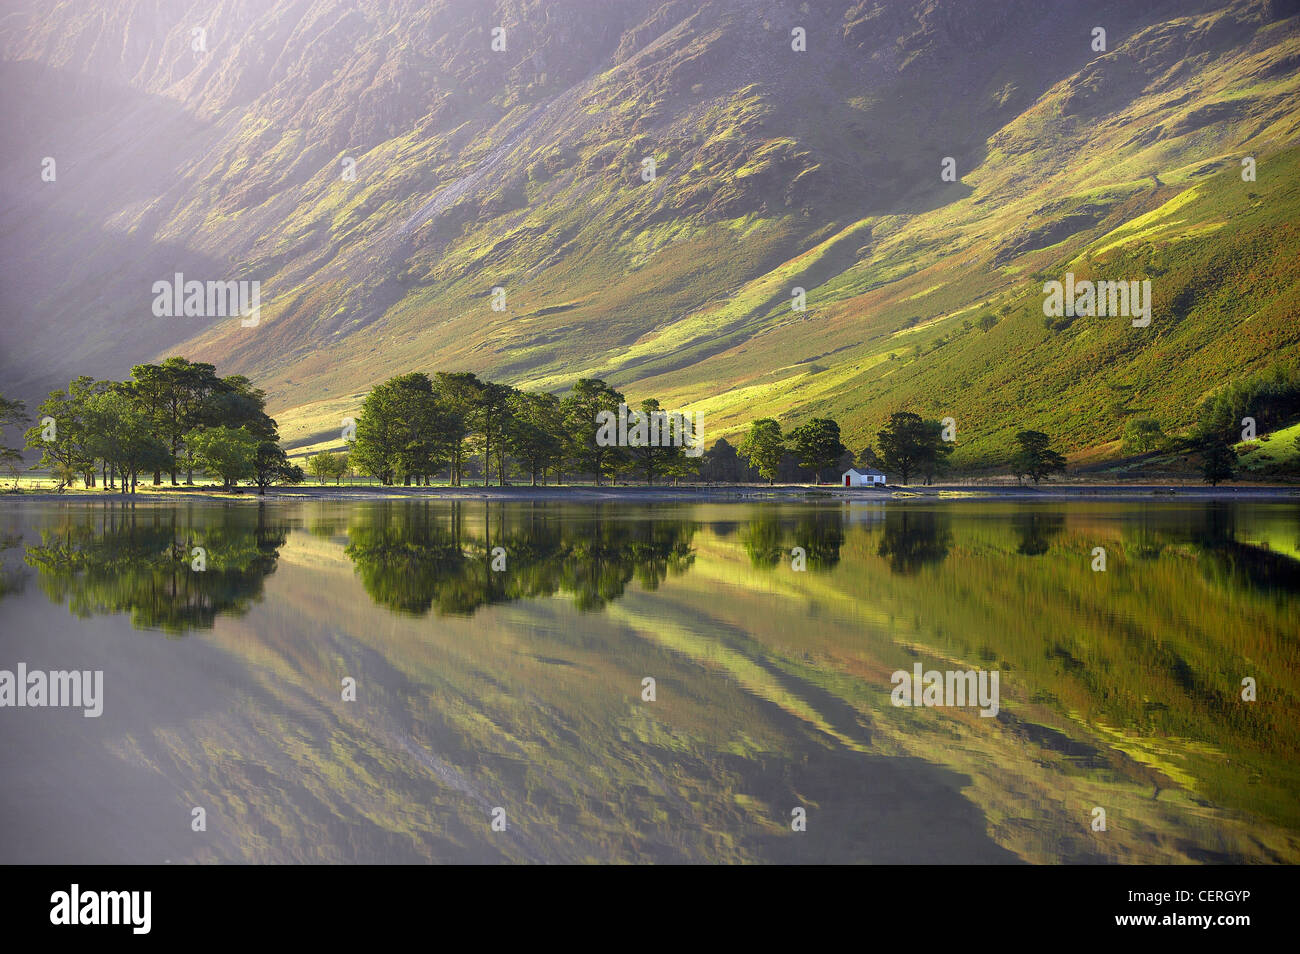 reflections on the shore of Buttermere at dawn, Cumbria, Lakes District, Cumbria, England, UK Stock Foto